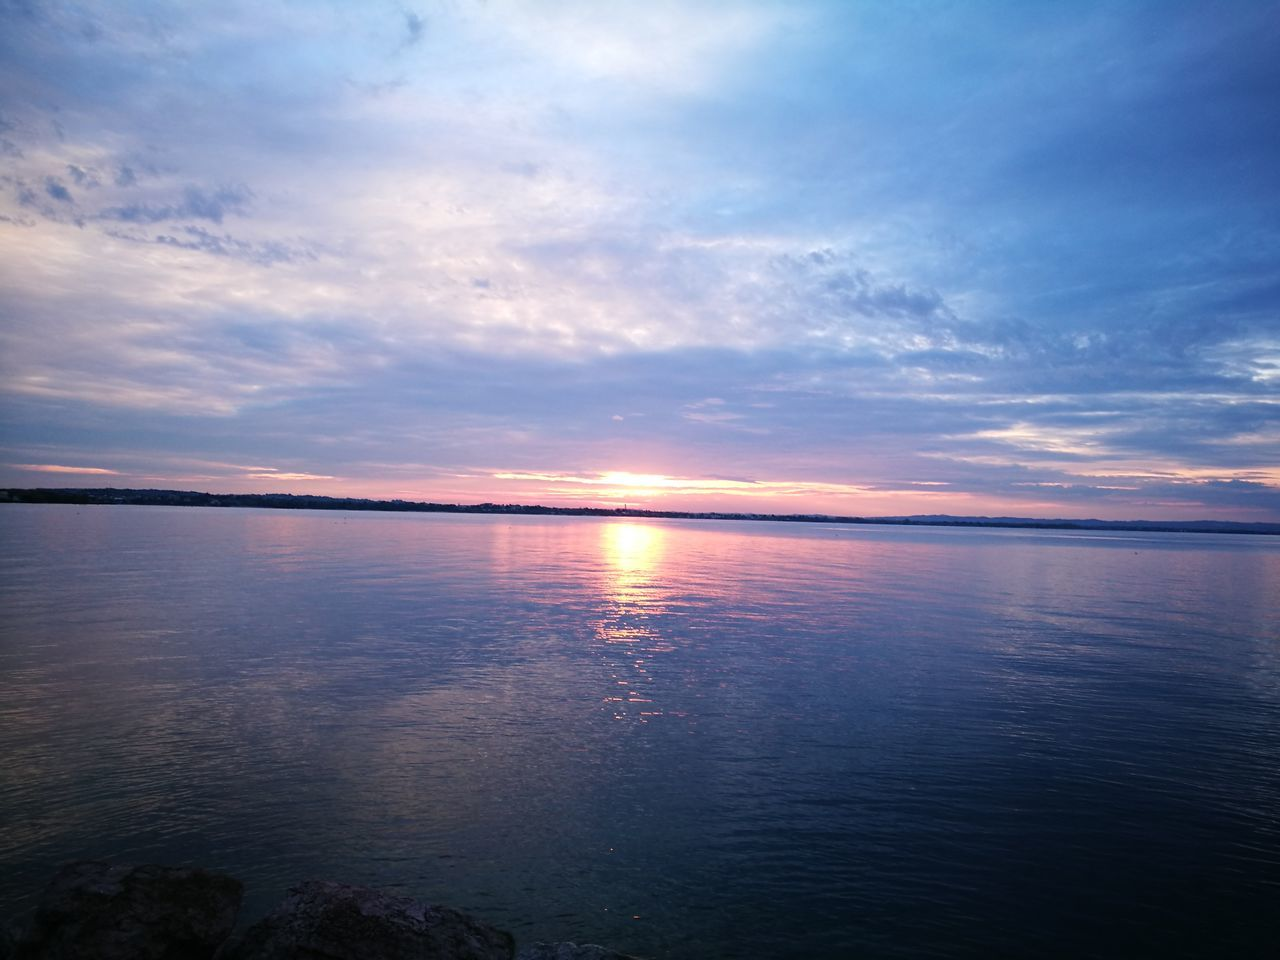 scenics, sunset, beauty in nature, tranquility, nature, water, tranquil scene, sky, reflection, idyllic, sea, cloud - sky, no people, outdoors, waterfront, horizon over water, day